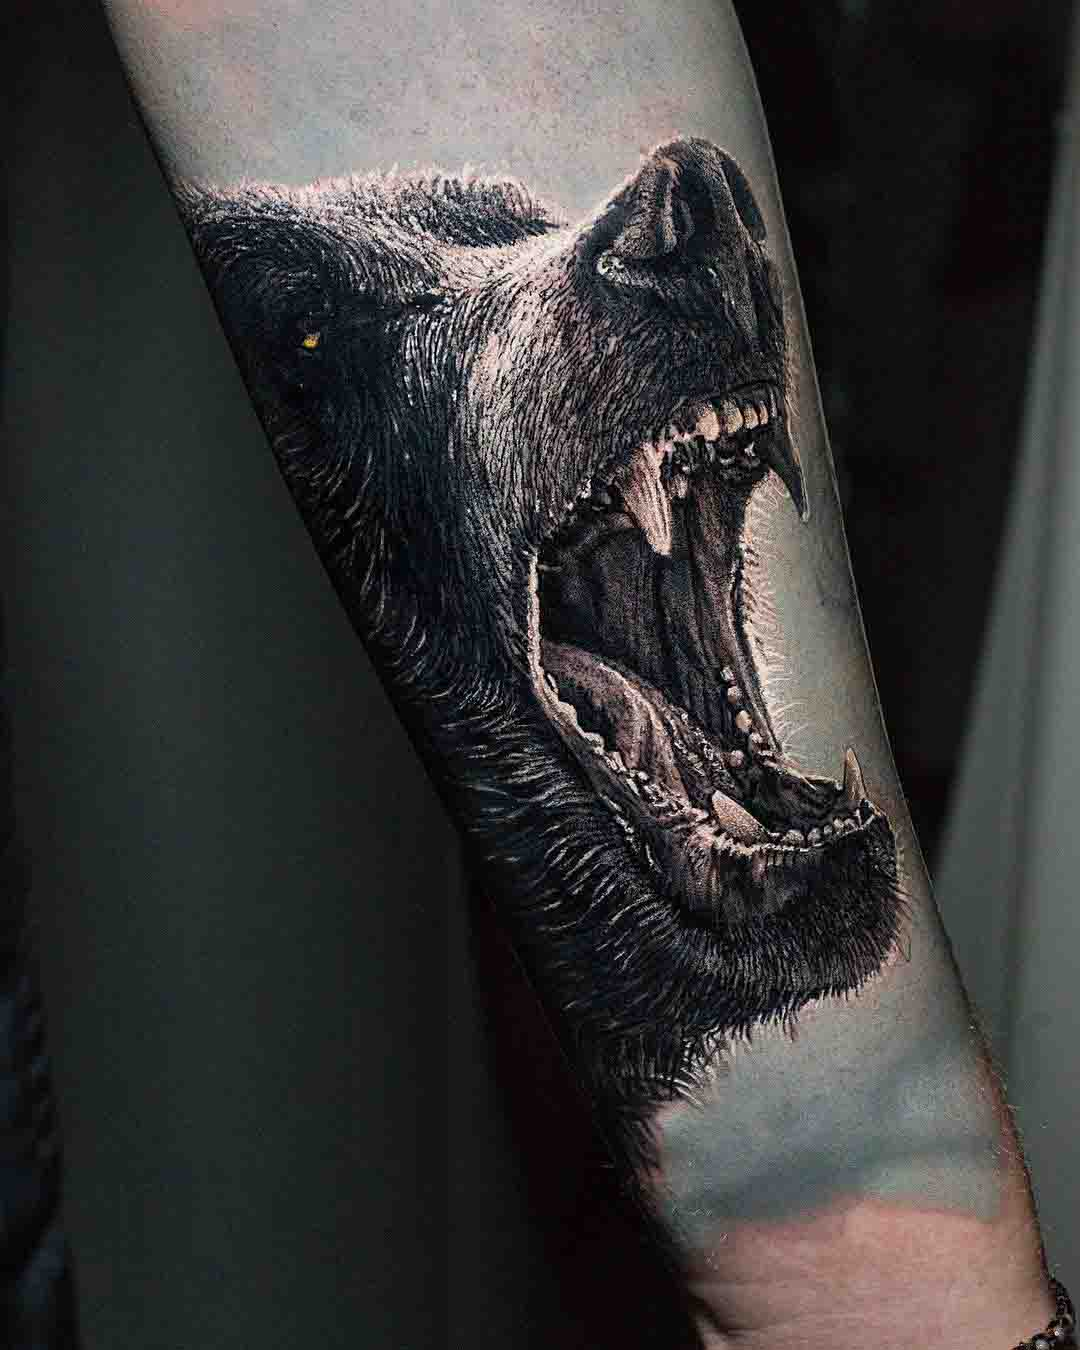 growling bear tattoo on arm